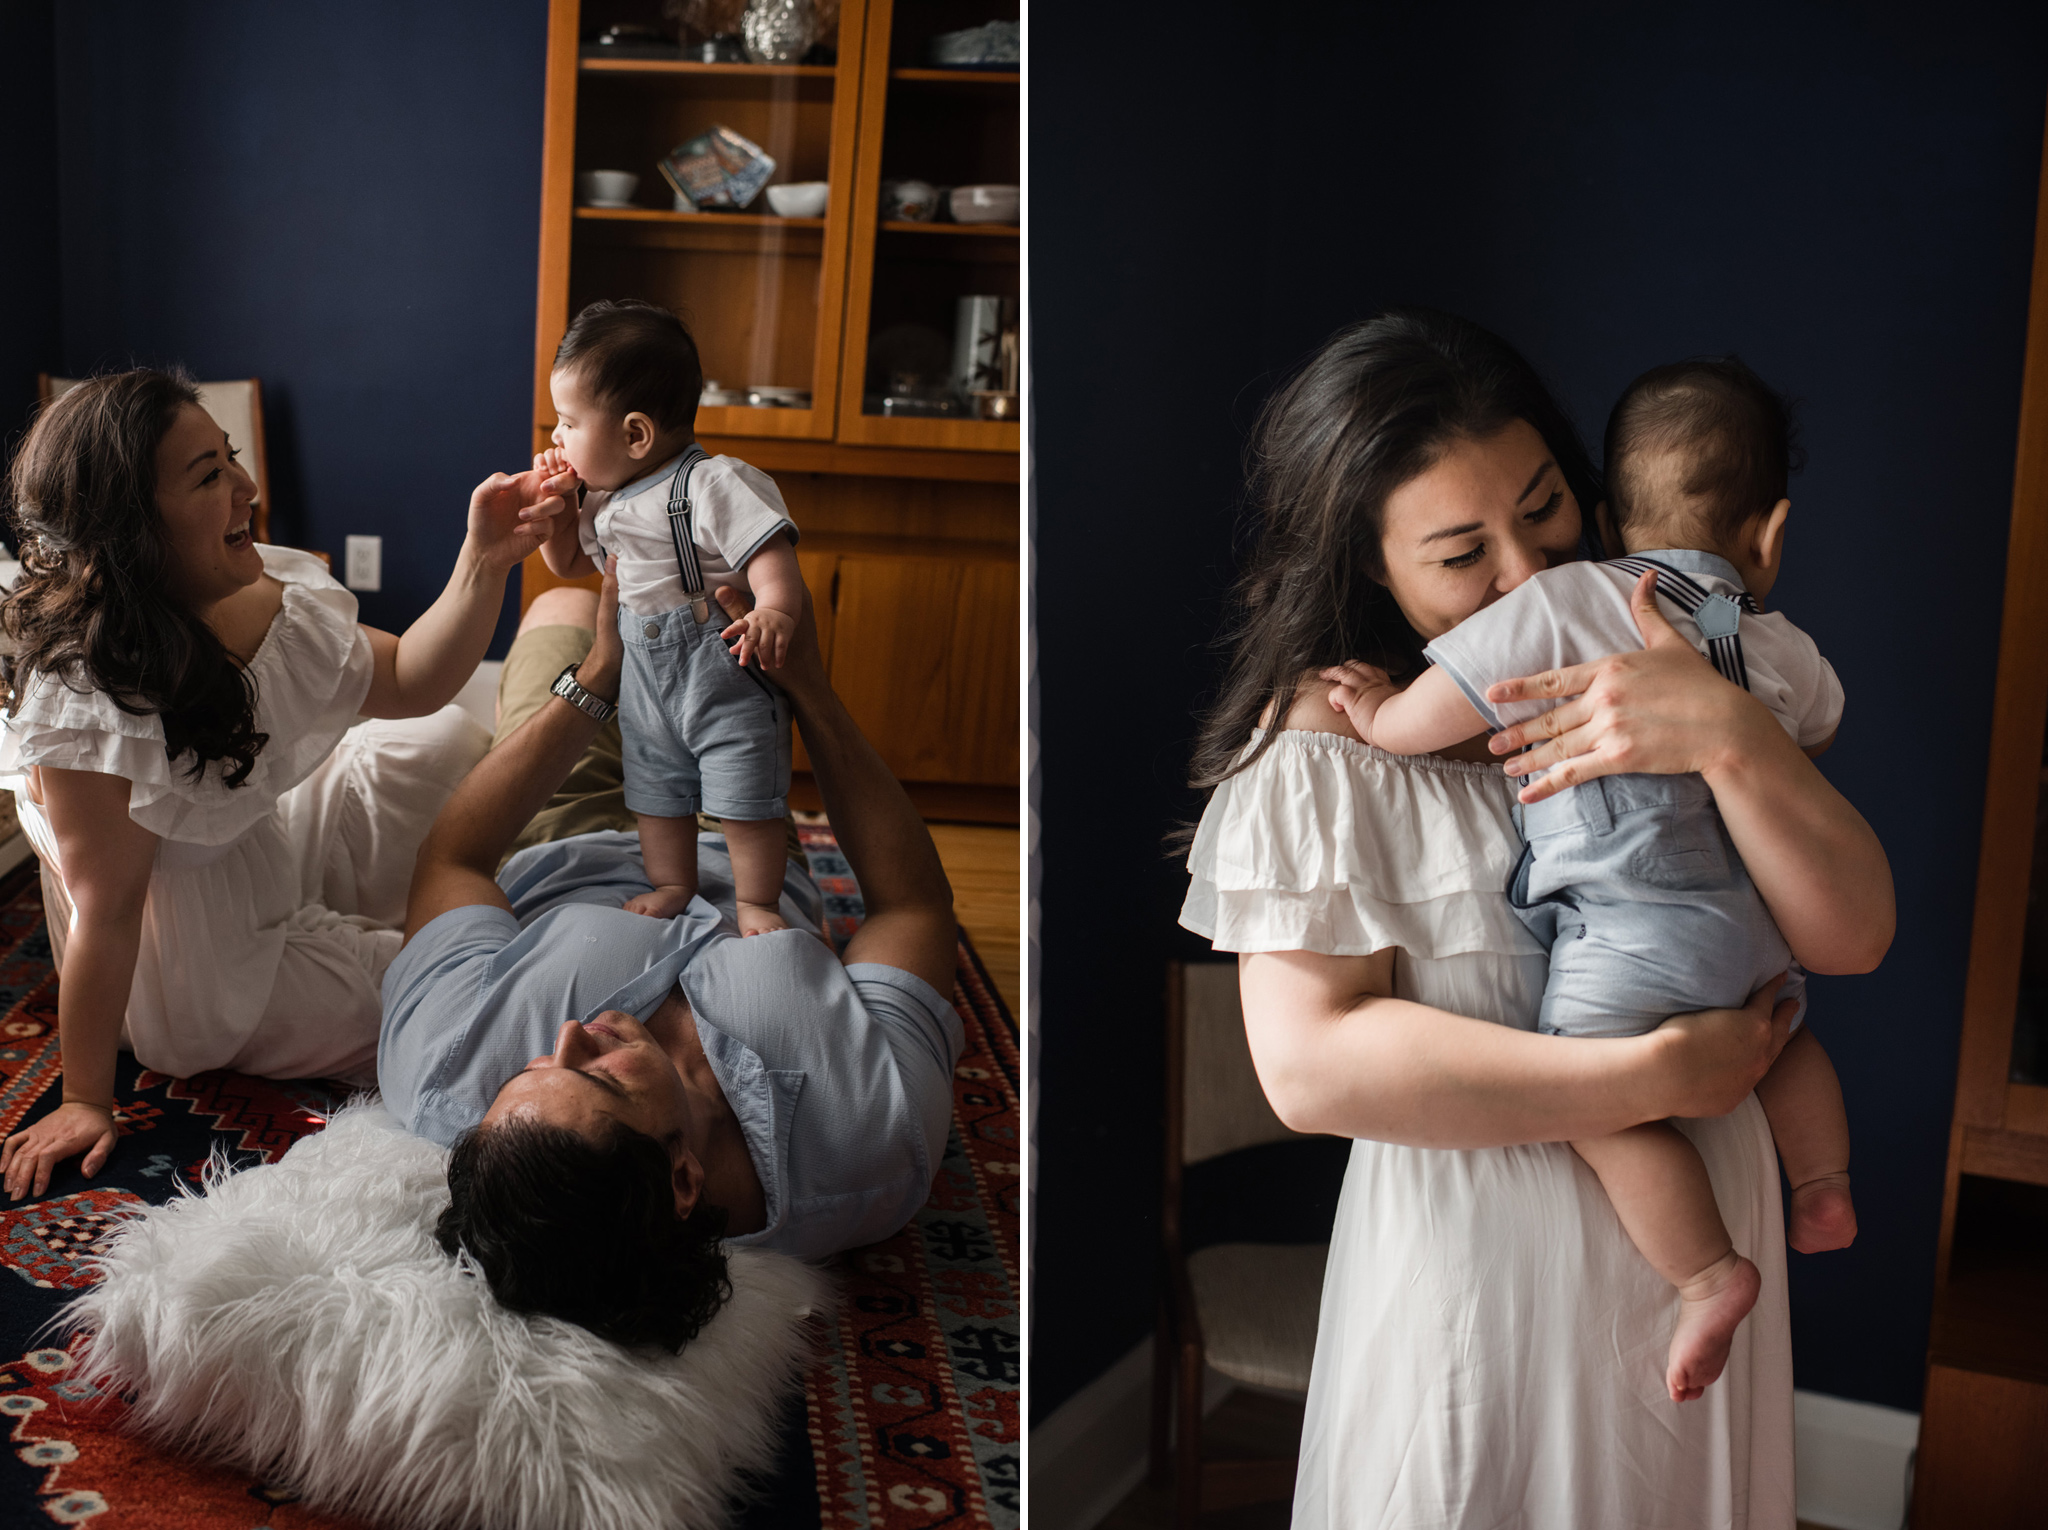 162-mom-baby-family-at-home-photoshoot.jpg